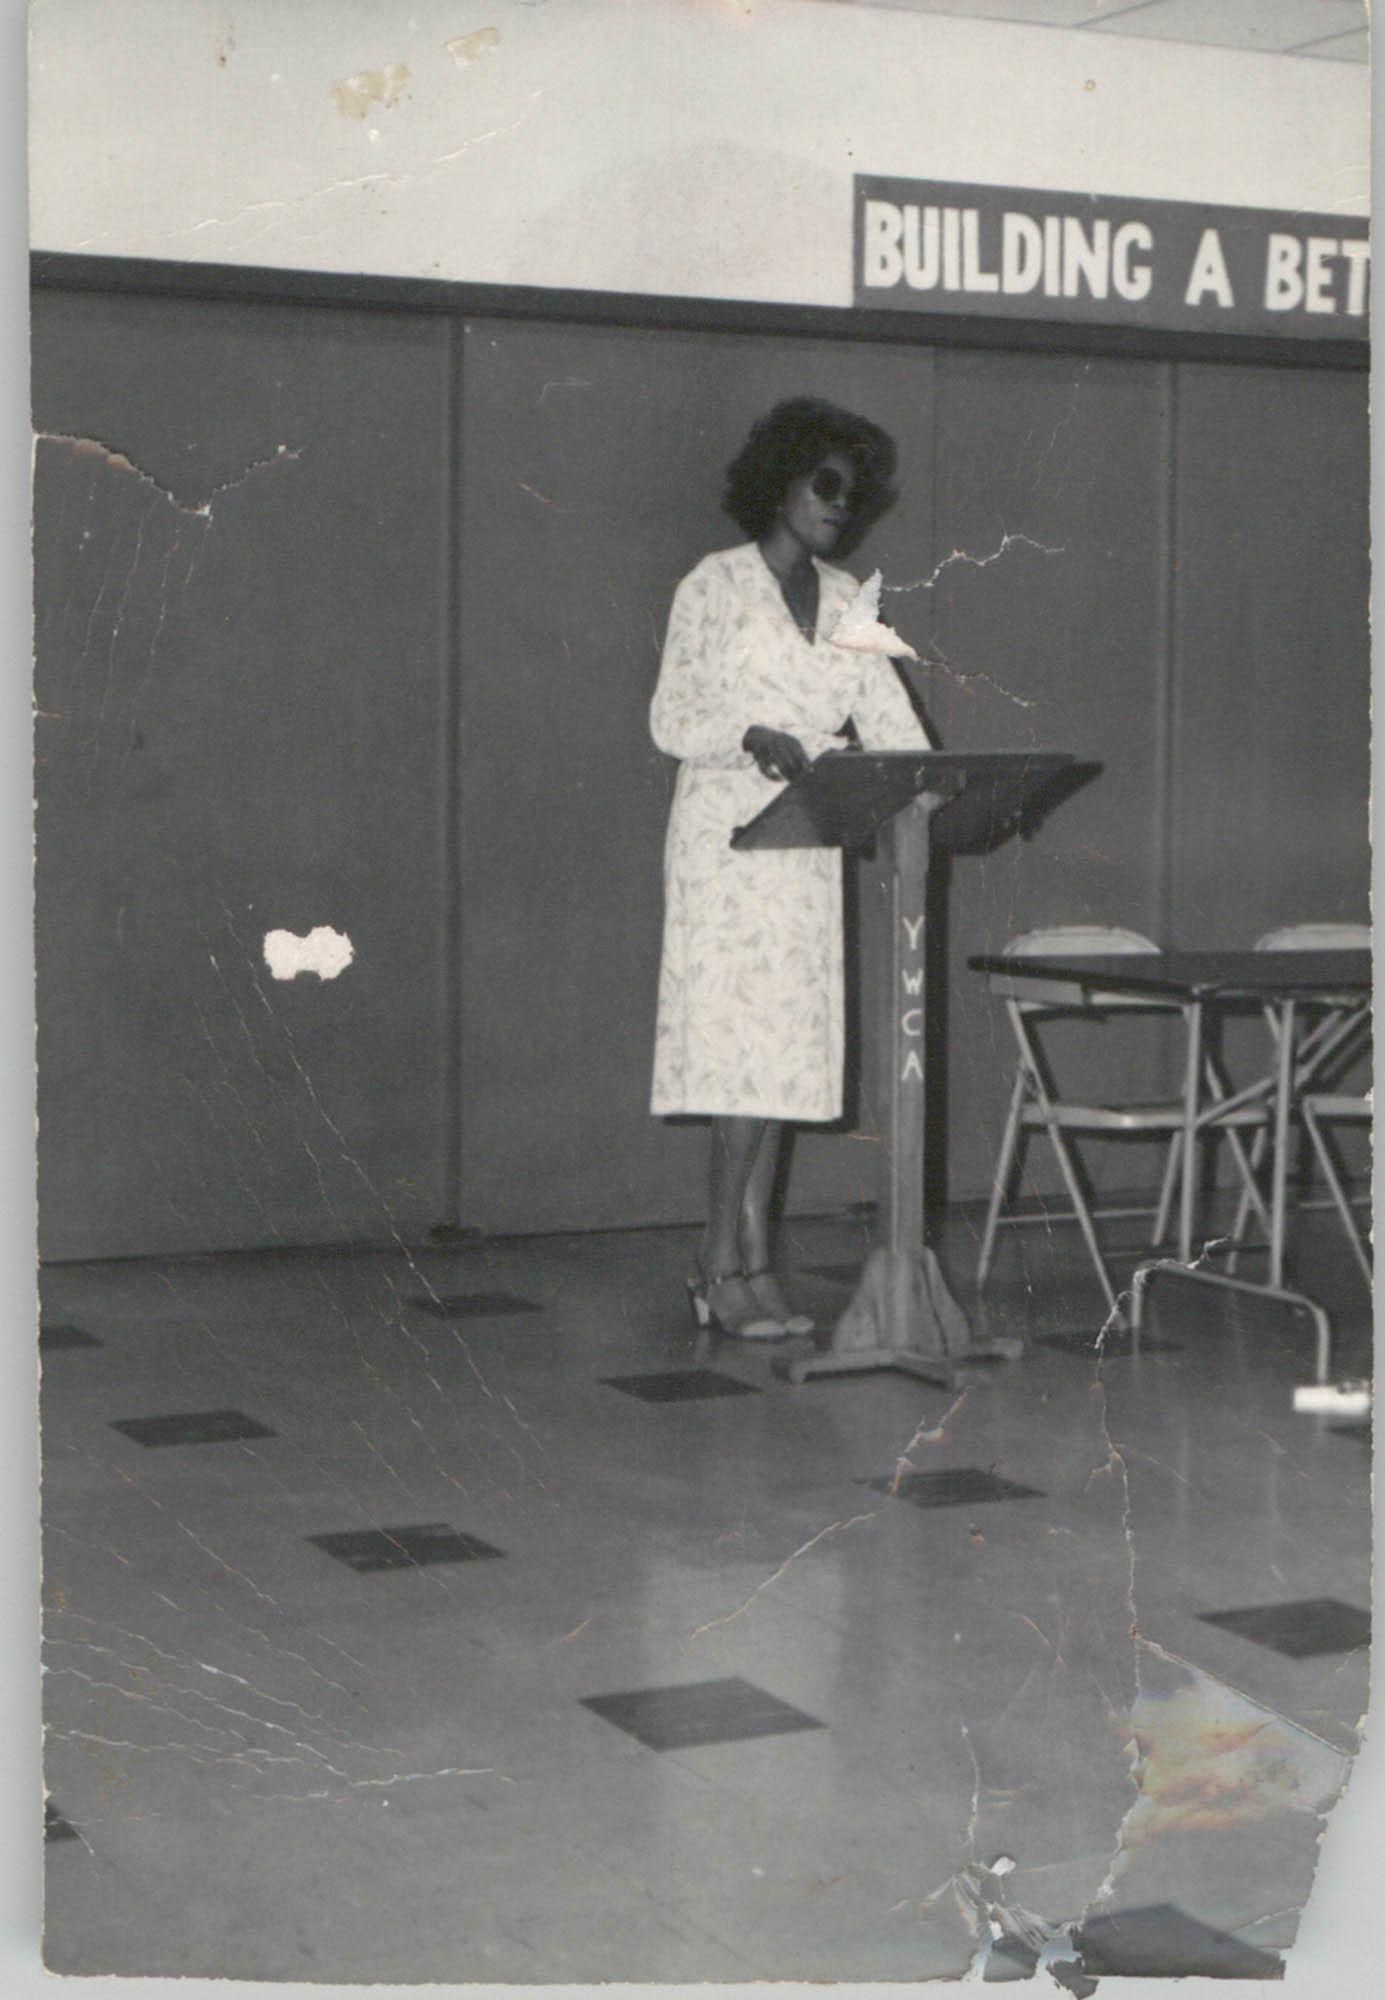 Photograph of a Woman Speaker